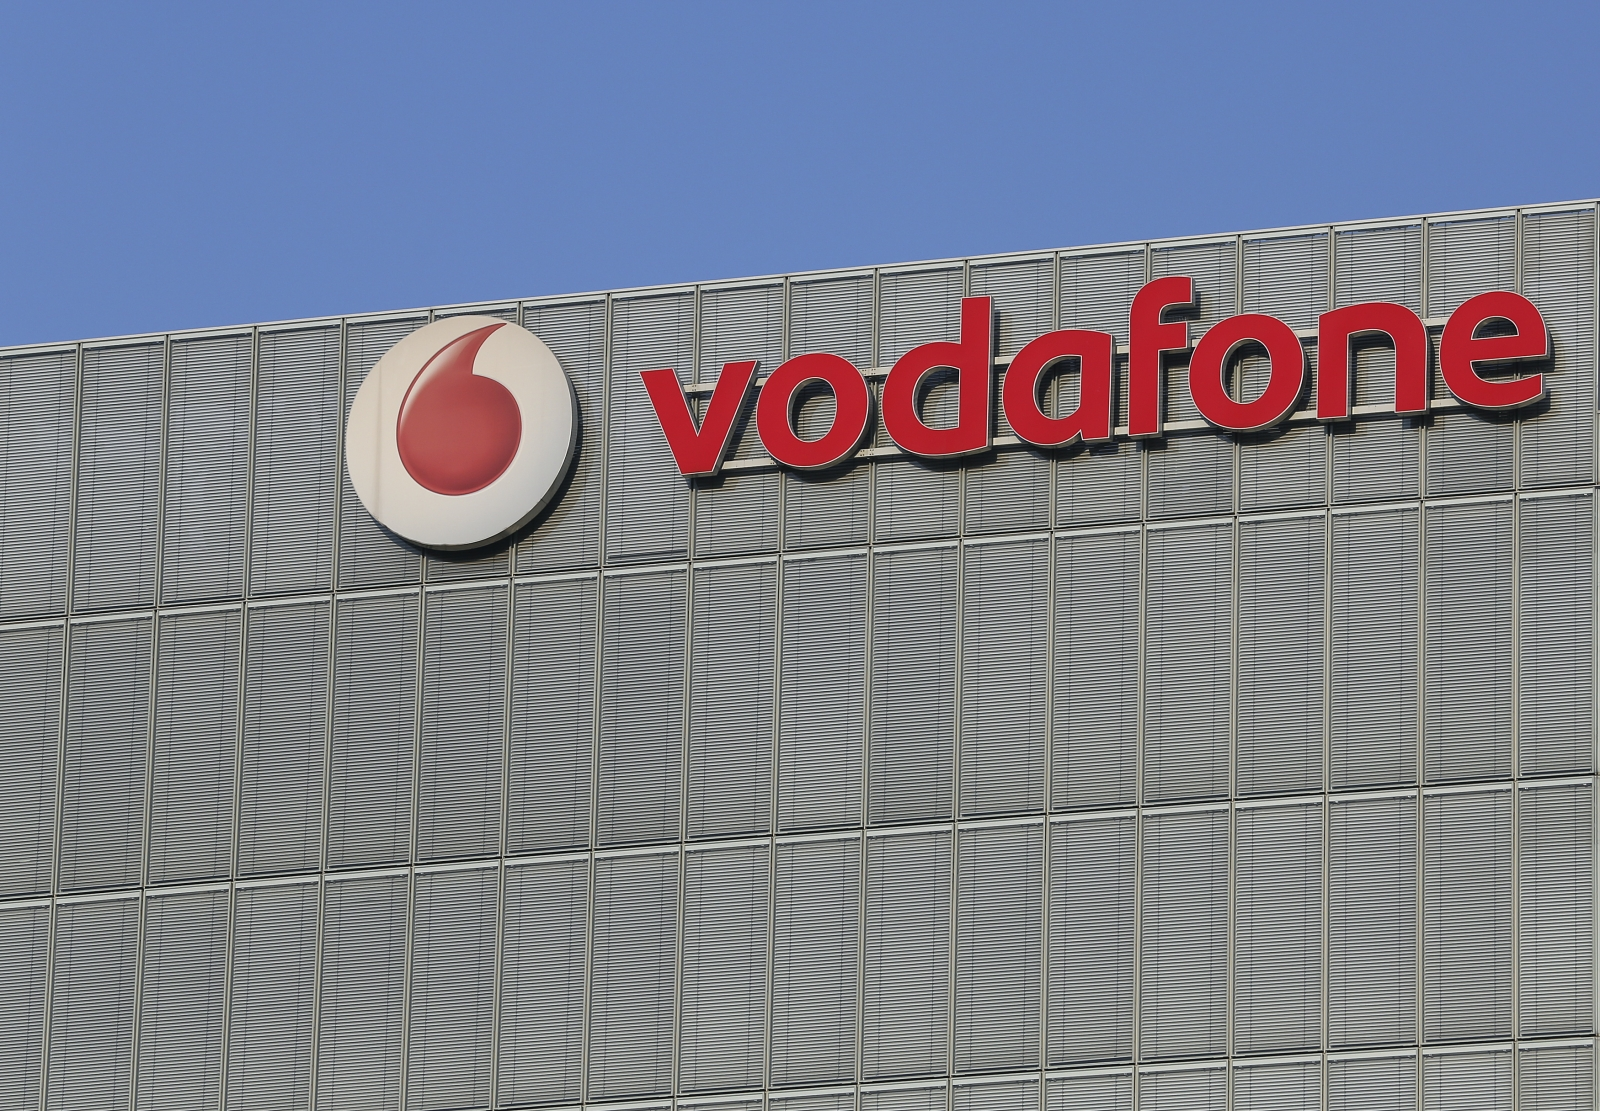 Vodafone's £2bn expansion to create 300 Scottish jobs